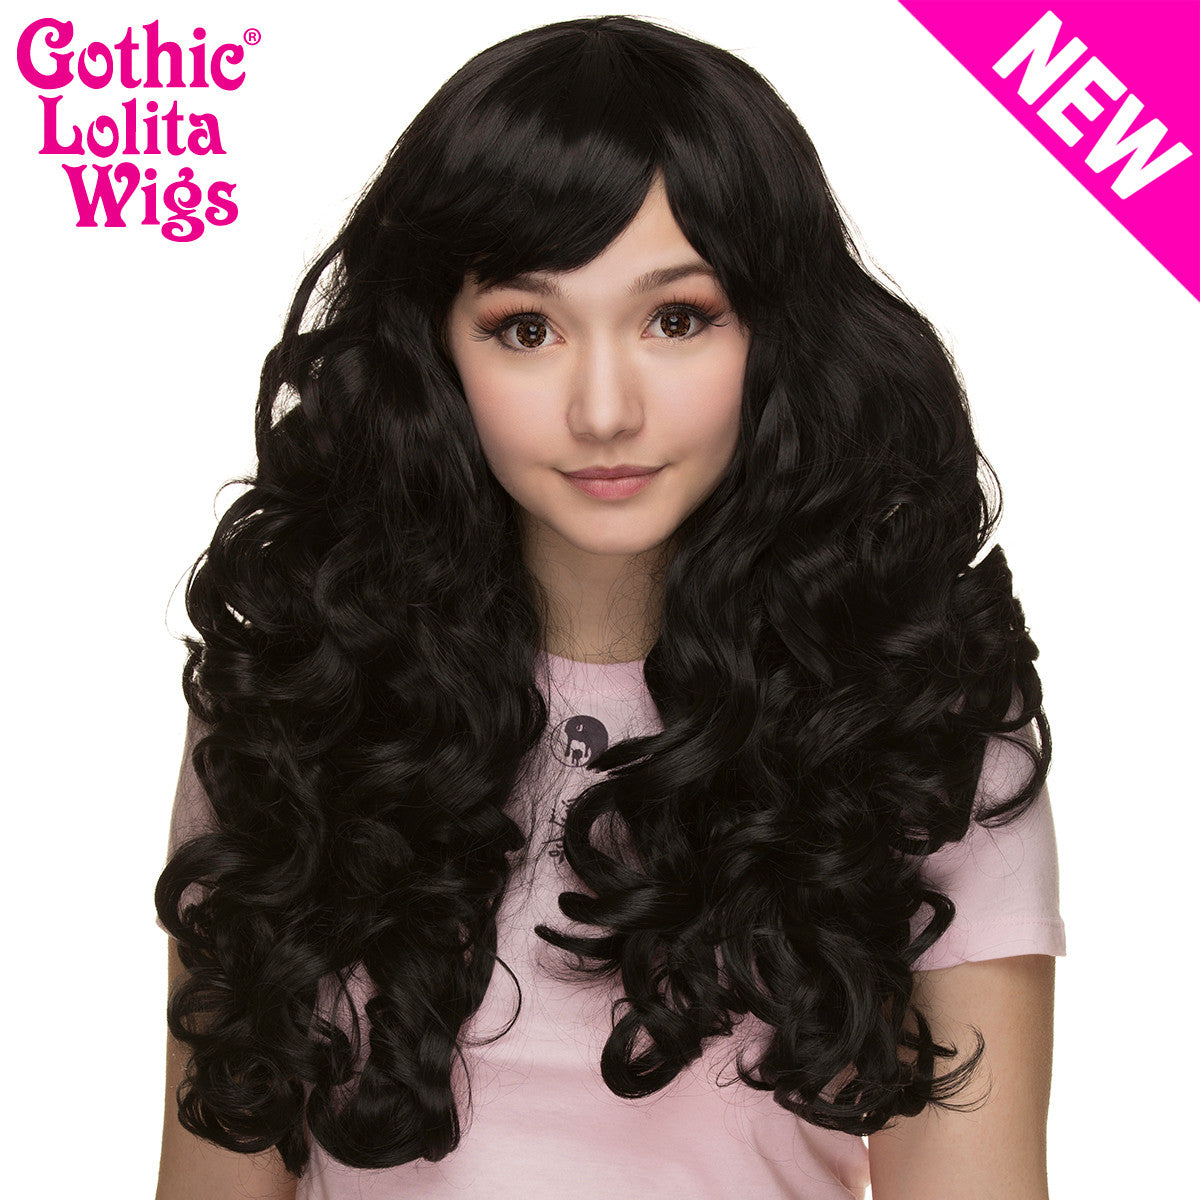 Gothic Lolita Wigs® <br> Spiraluxe 2™ Collection - Raven -00130